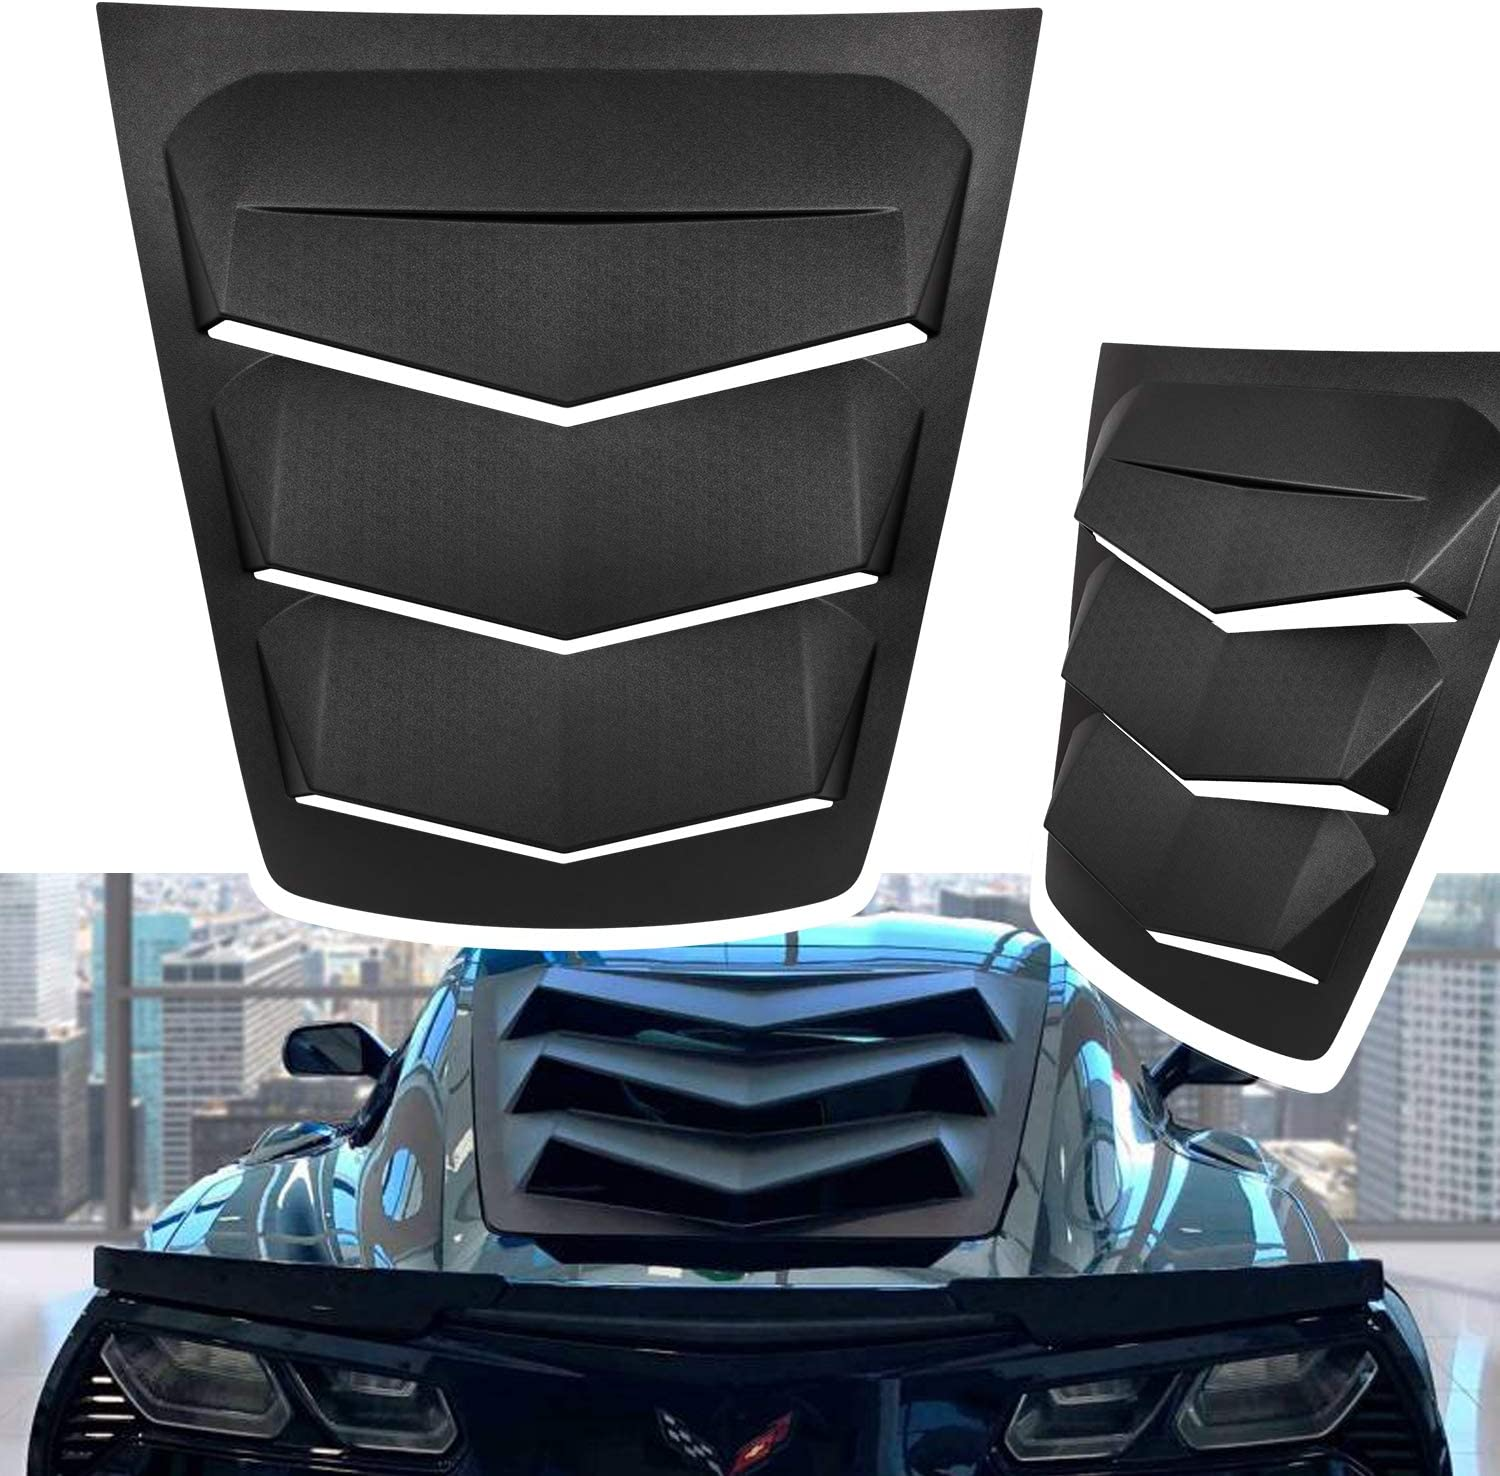 GGBAILEY D51571-S1A-BLK/_BR Custom Fit Car Mats for 2014 Passenger /& Rear Floor 2016 Mitsubishi Mirage Hatchback Black with Red Edging Driver 2015